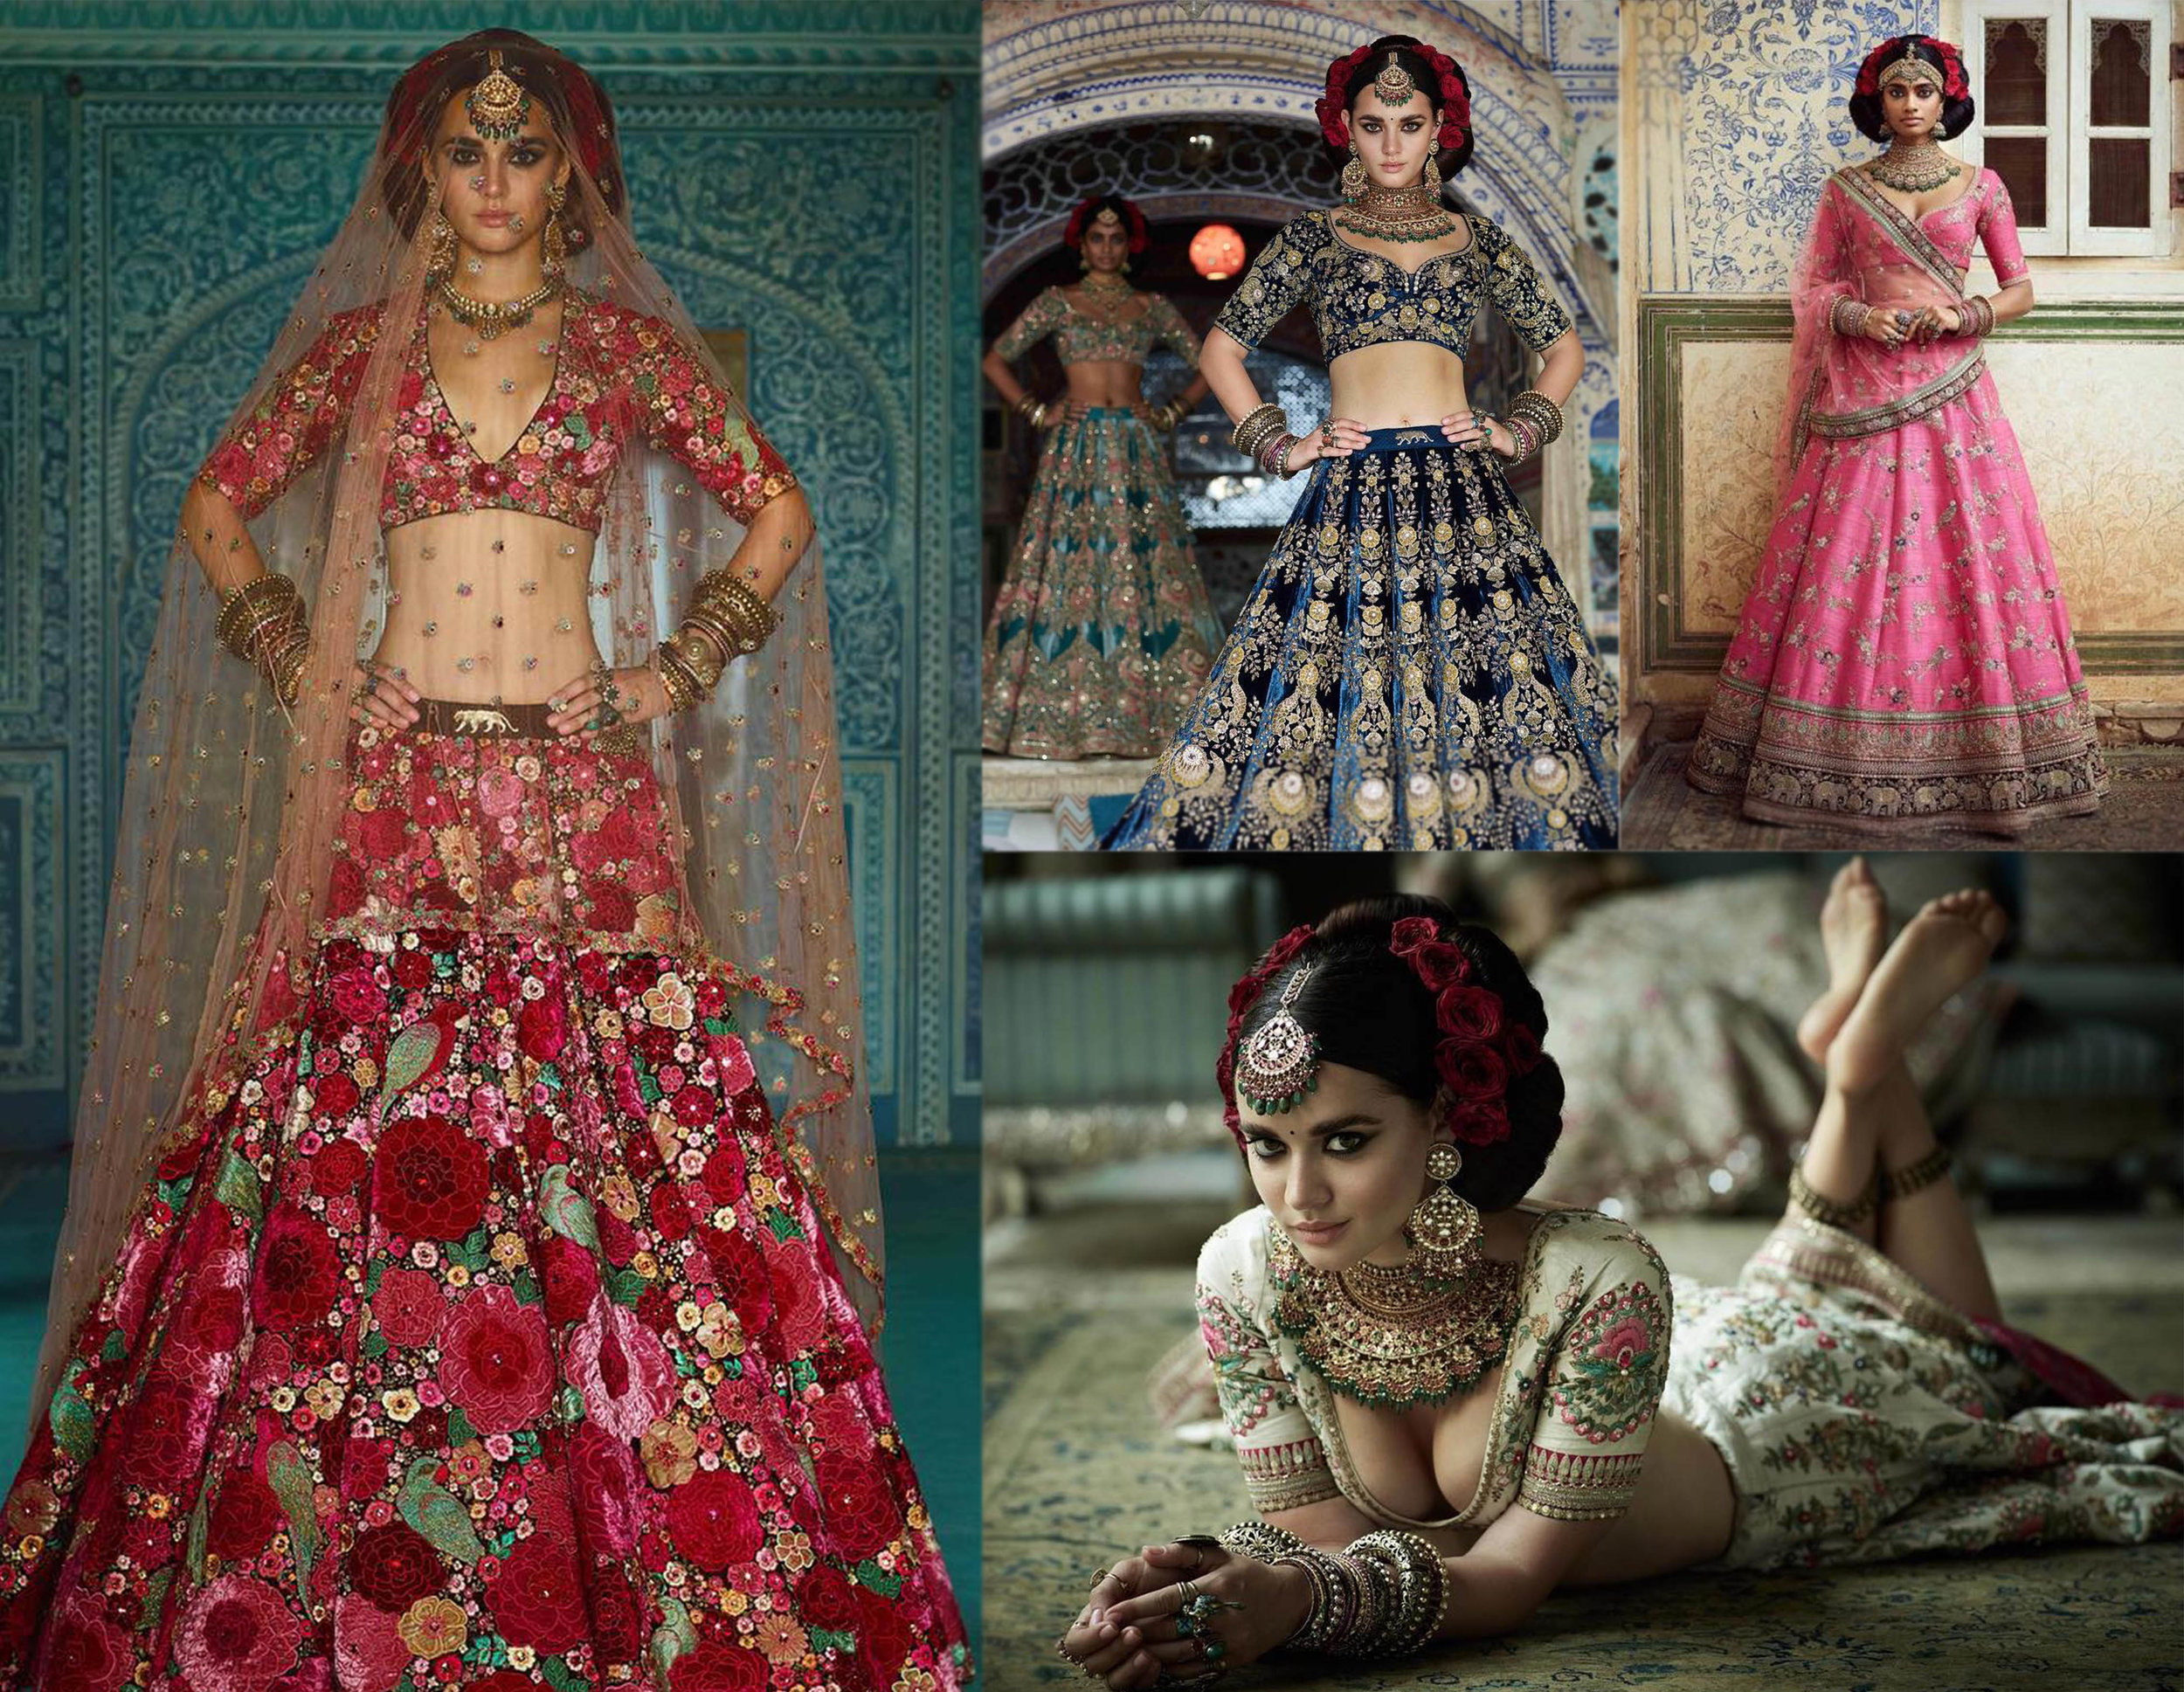 Sabyasachi - The collection was filled with hand-embroidery lehengha and sarees. The most famous outfit being the 'Dil-guldasta lehenga.